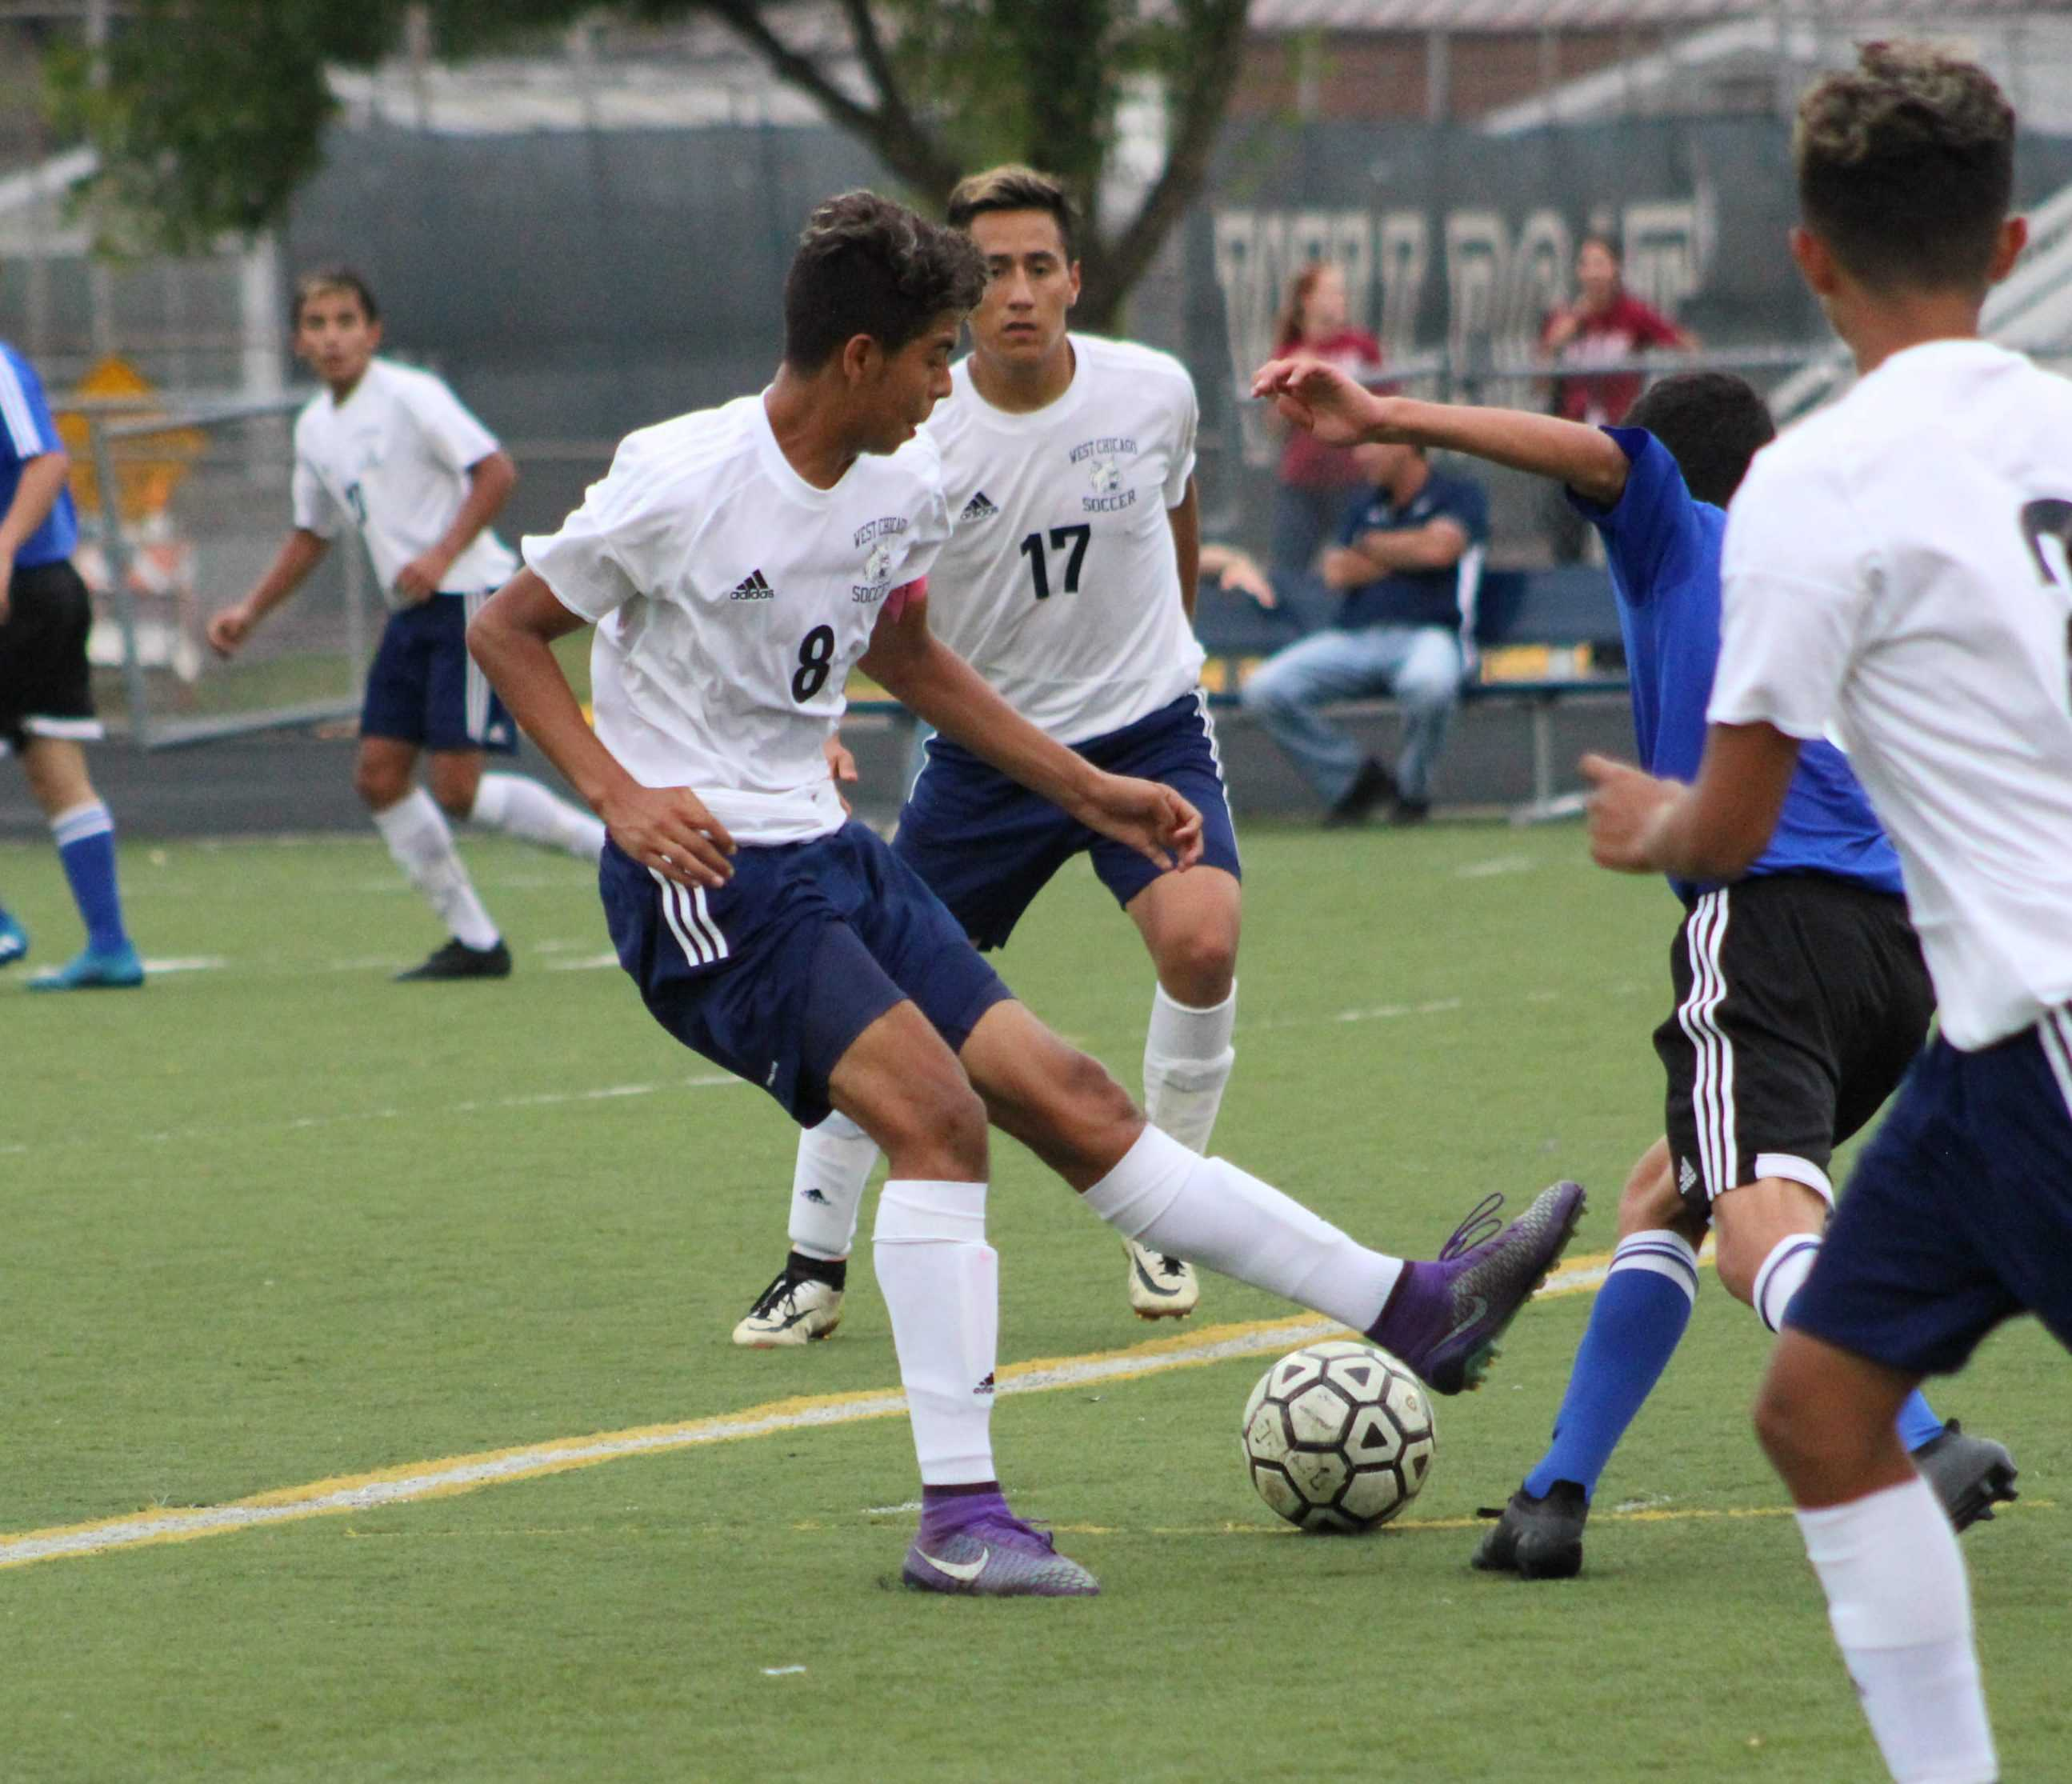 Senior Edgar Pani passes the ball back to senior Guillermo Orizaba, who then takes a shot on net. The teams next home game is Oct. 4 against Bartlett.